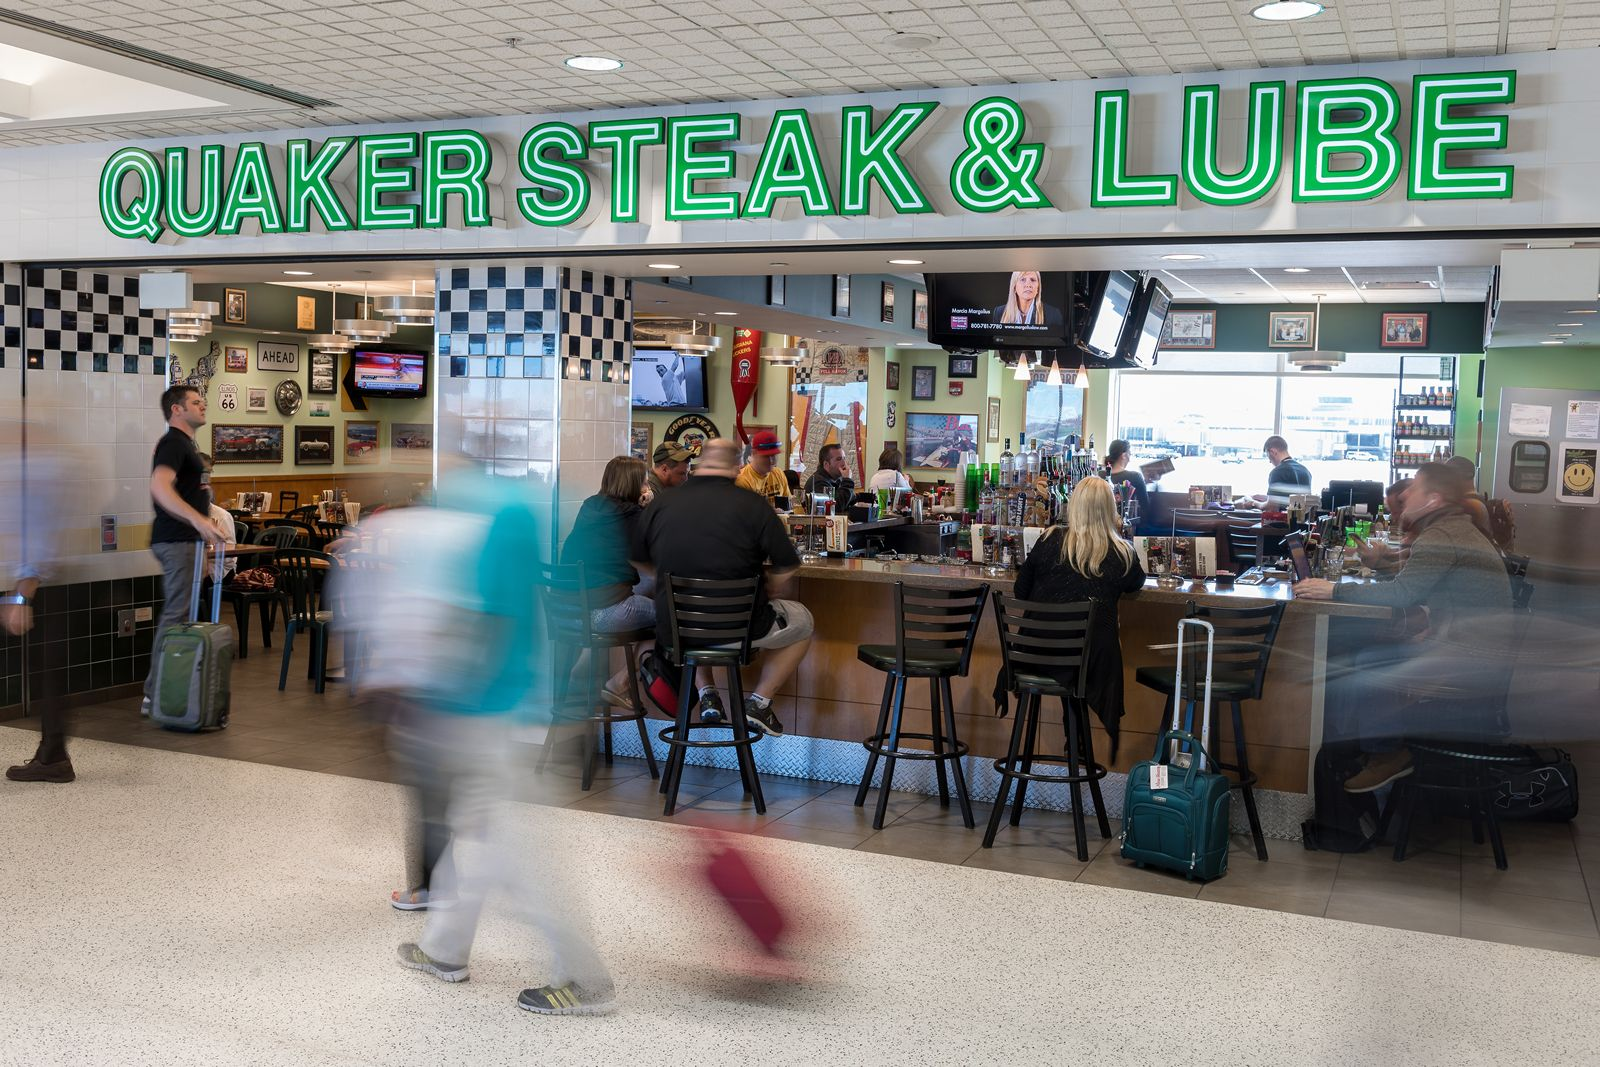 Quaker Steak & Lube Seeks Airport Expansion at ARN Revenue Conference & Exhibition in Orlando March 12-15, 2018